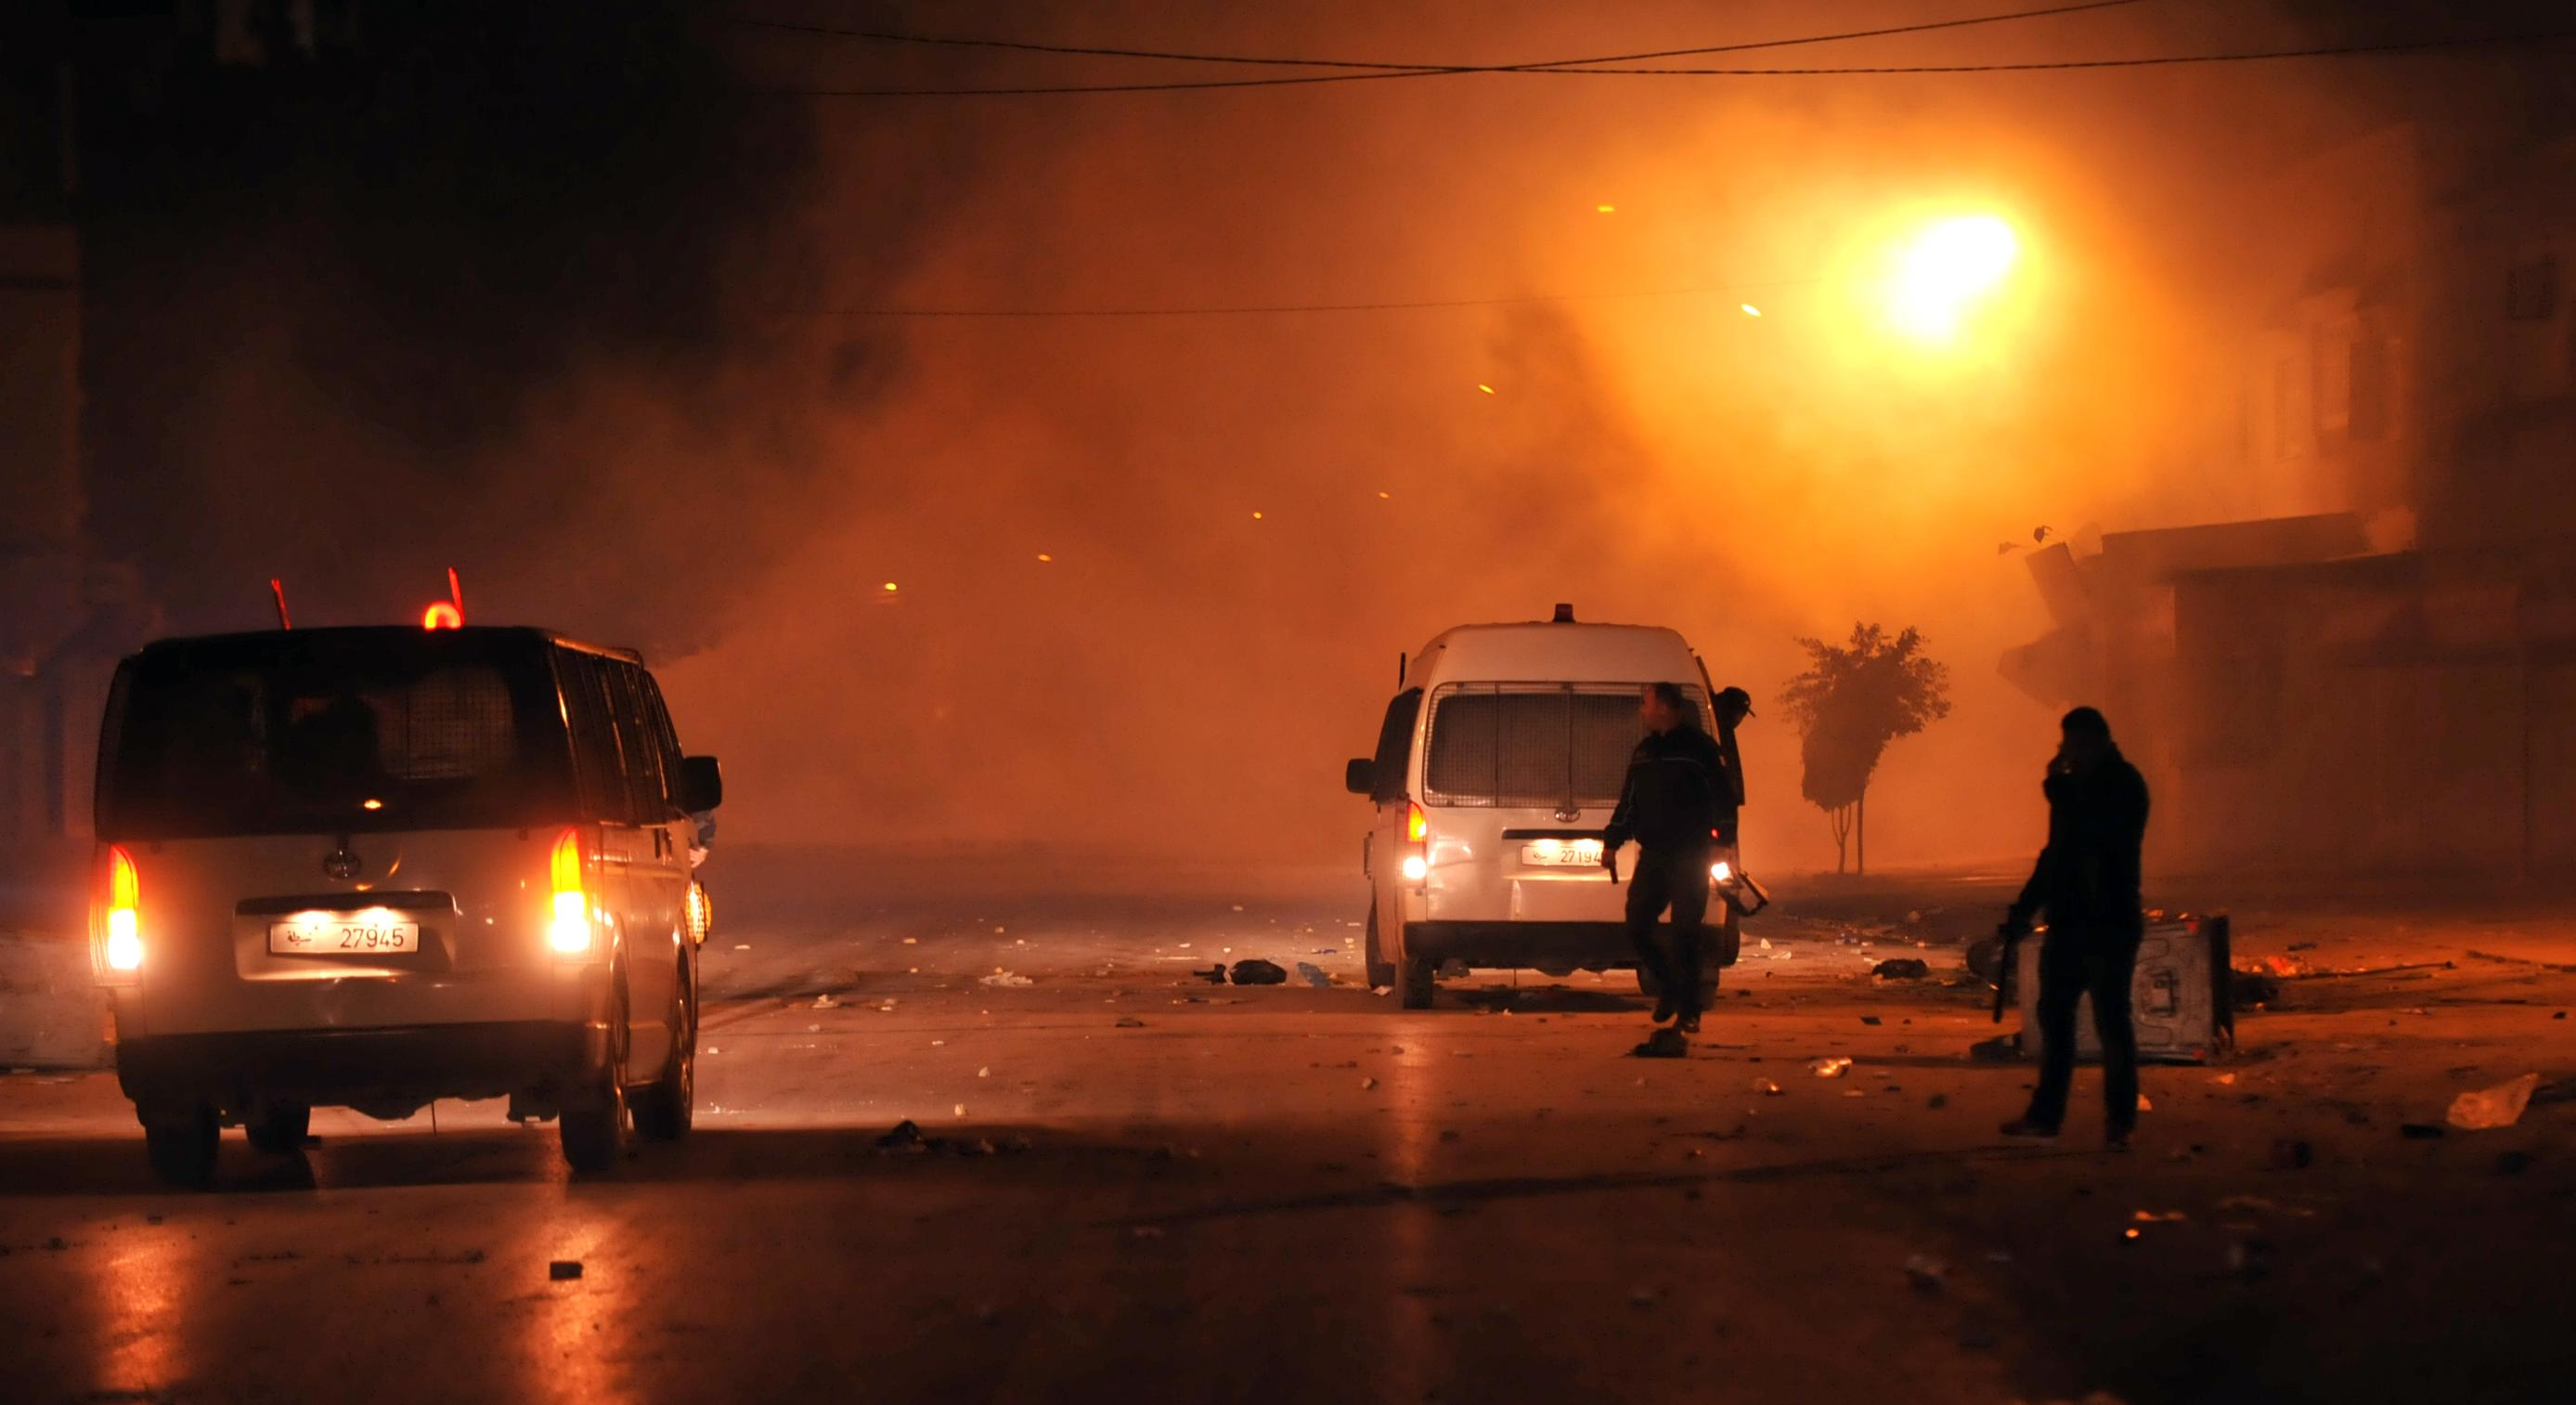 <p>Tunisian police track down rioters in Tunis' Djebel Lahmer district early on Jan. 10, 2018 after price hikes ignited protests in the North African country. (Photo: Sofiene Hamdaoui/AFP/Getty Images) </p>